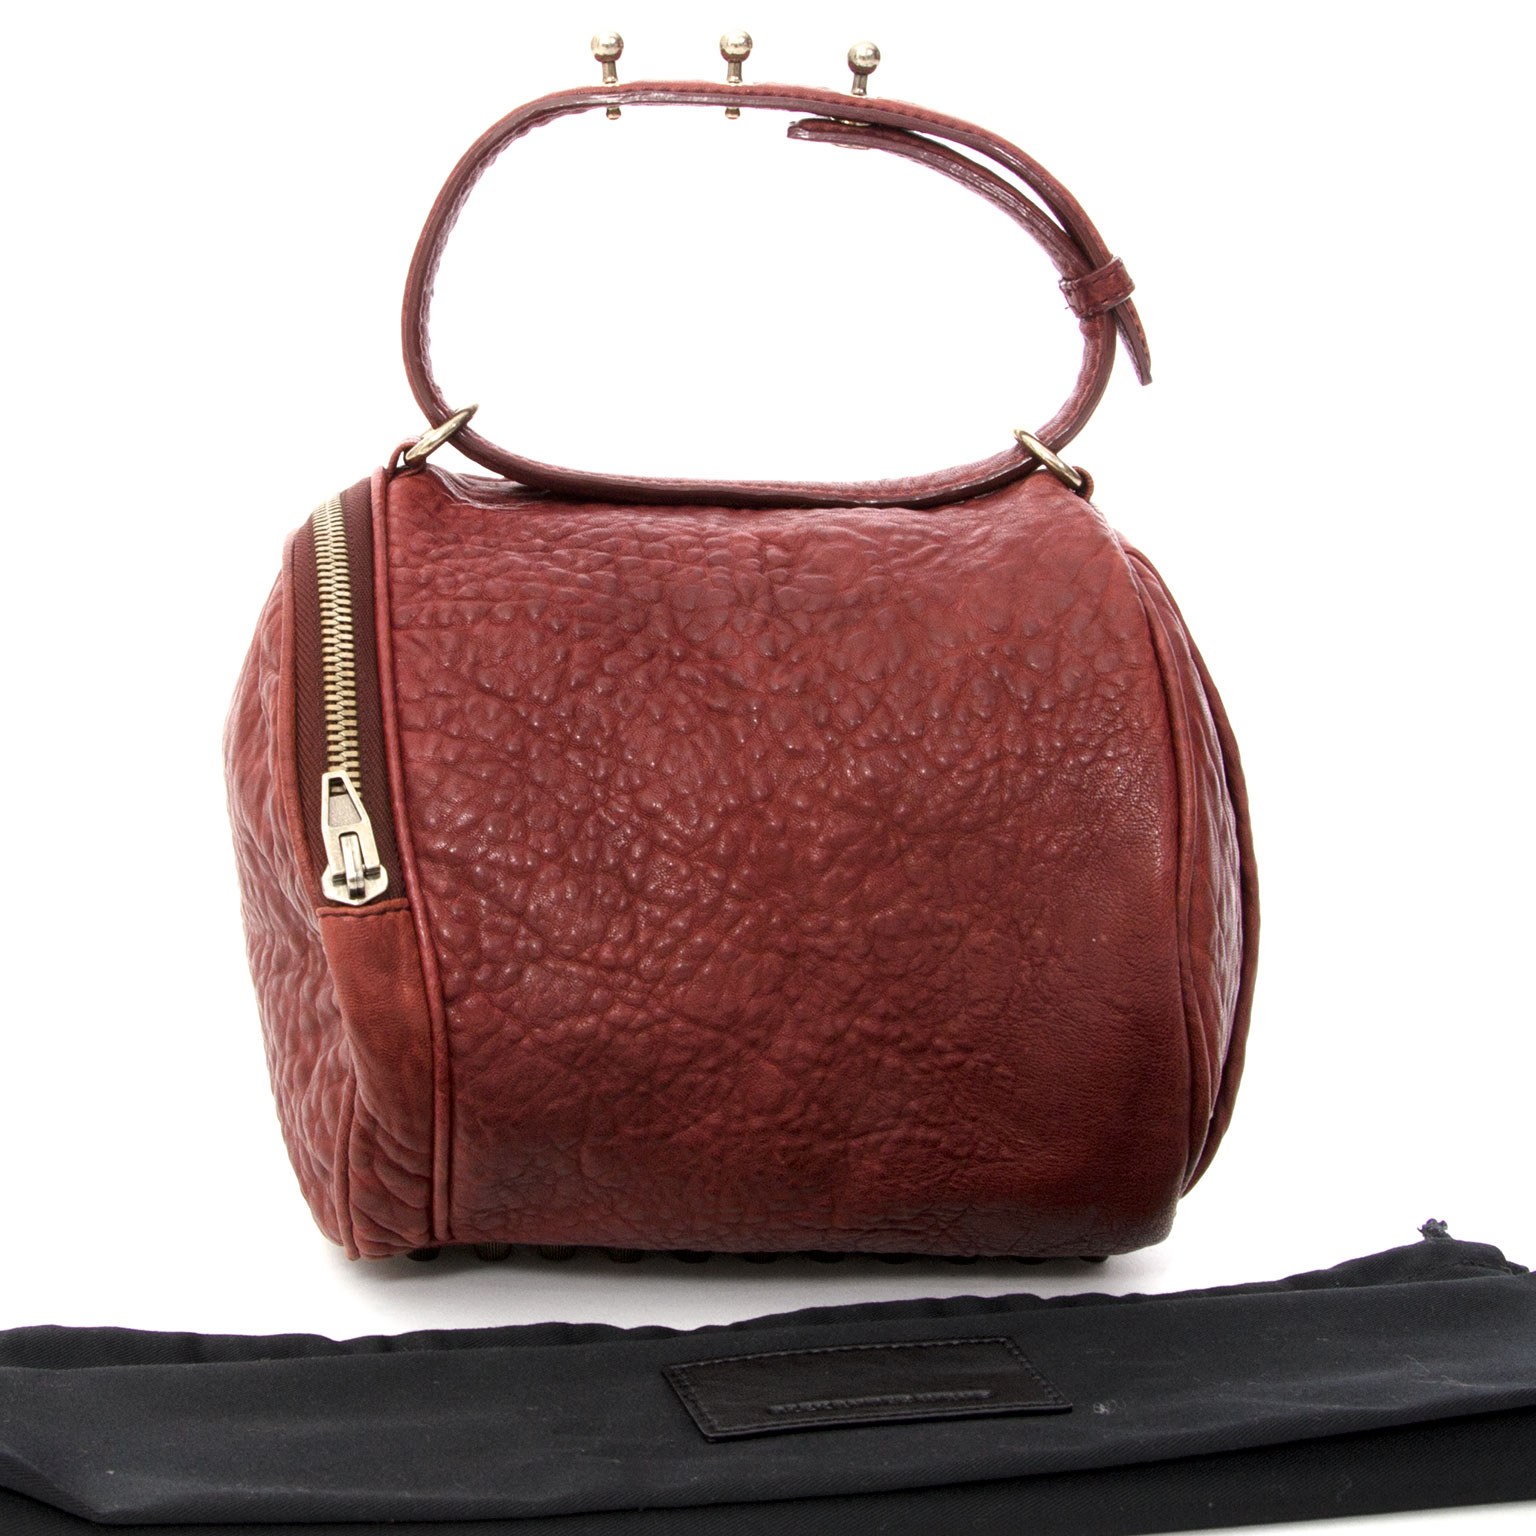 Alexander Wang Angela Pouchette Burgundy Buy authentic secondhand Delvaux bags at the right price at LabelLOV vintage webshop.